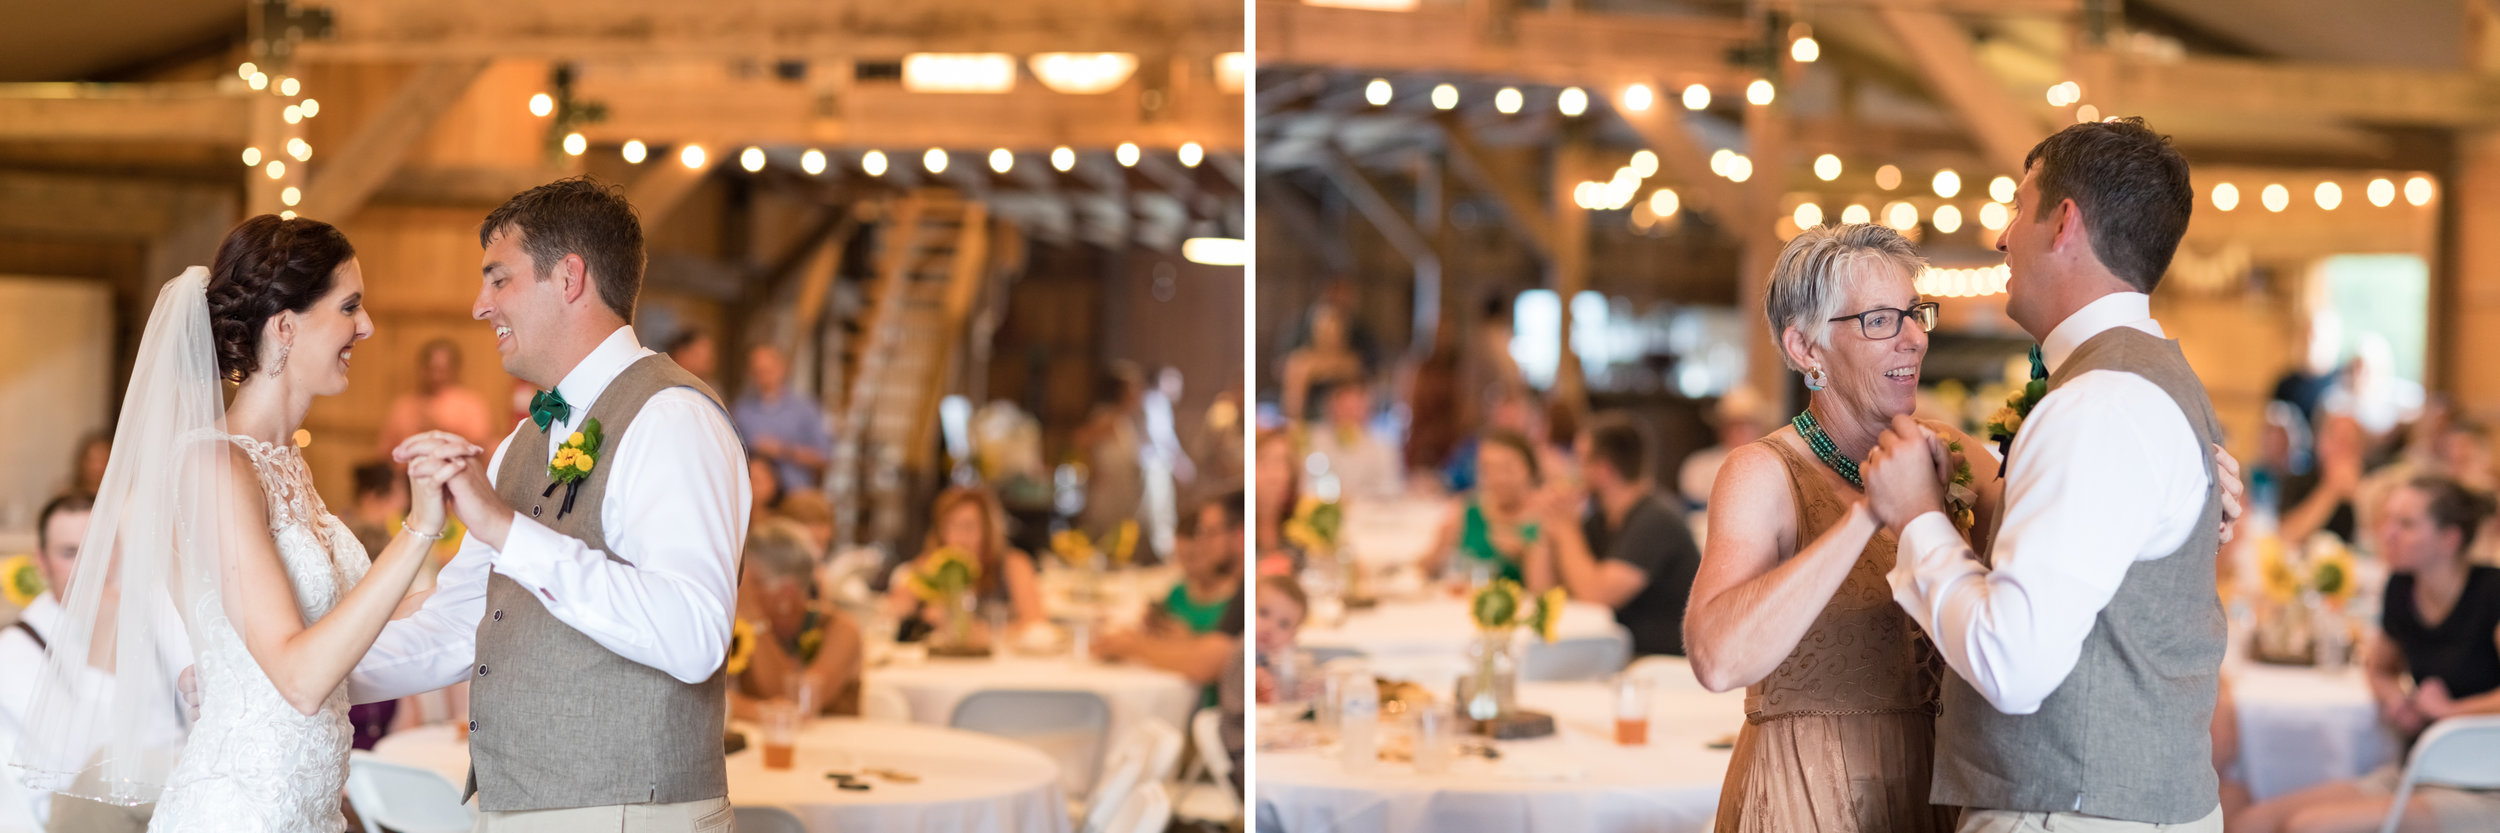 Bentonville Wedding Photographer Holland Barn 17.jpg